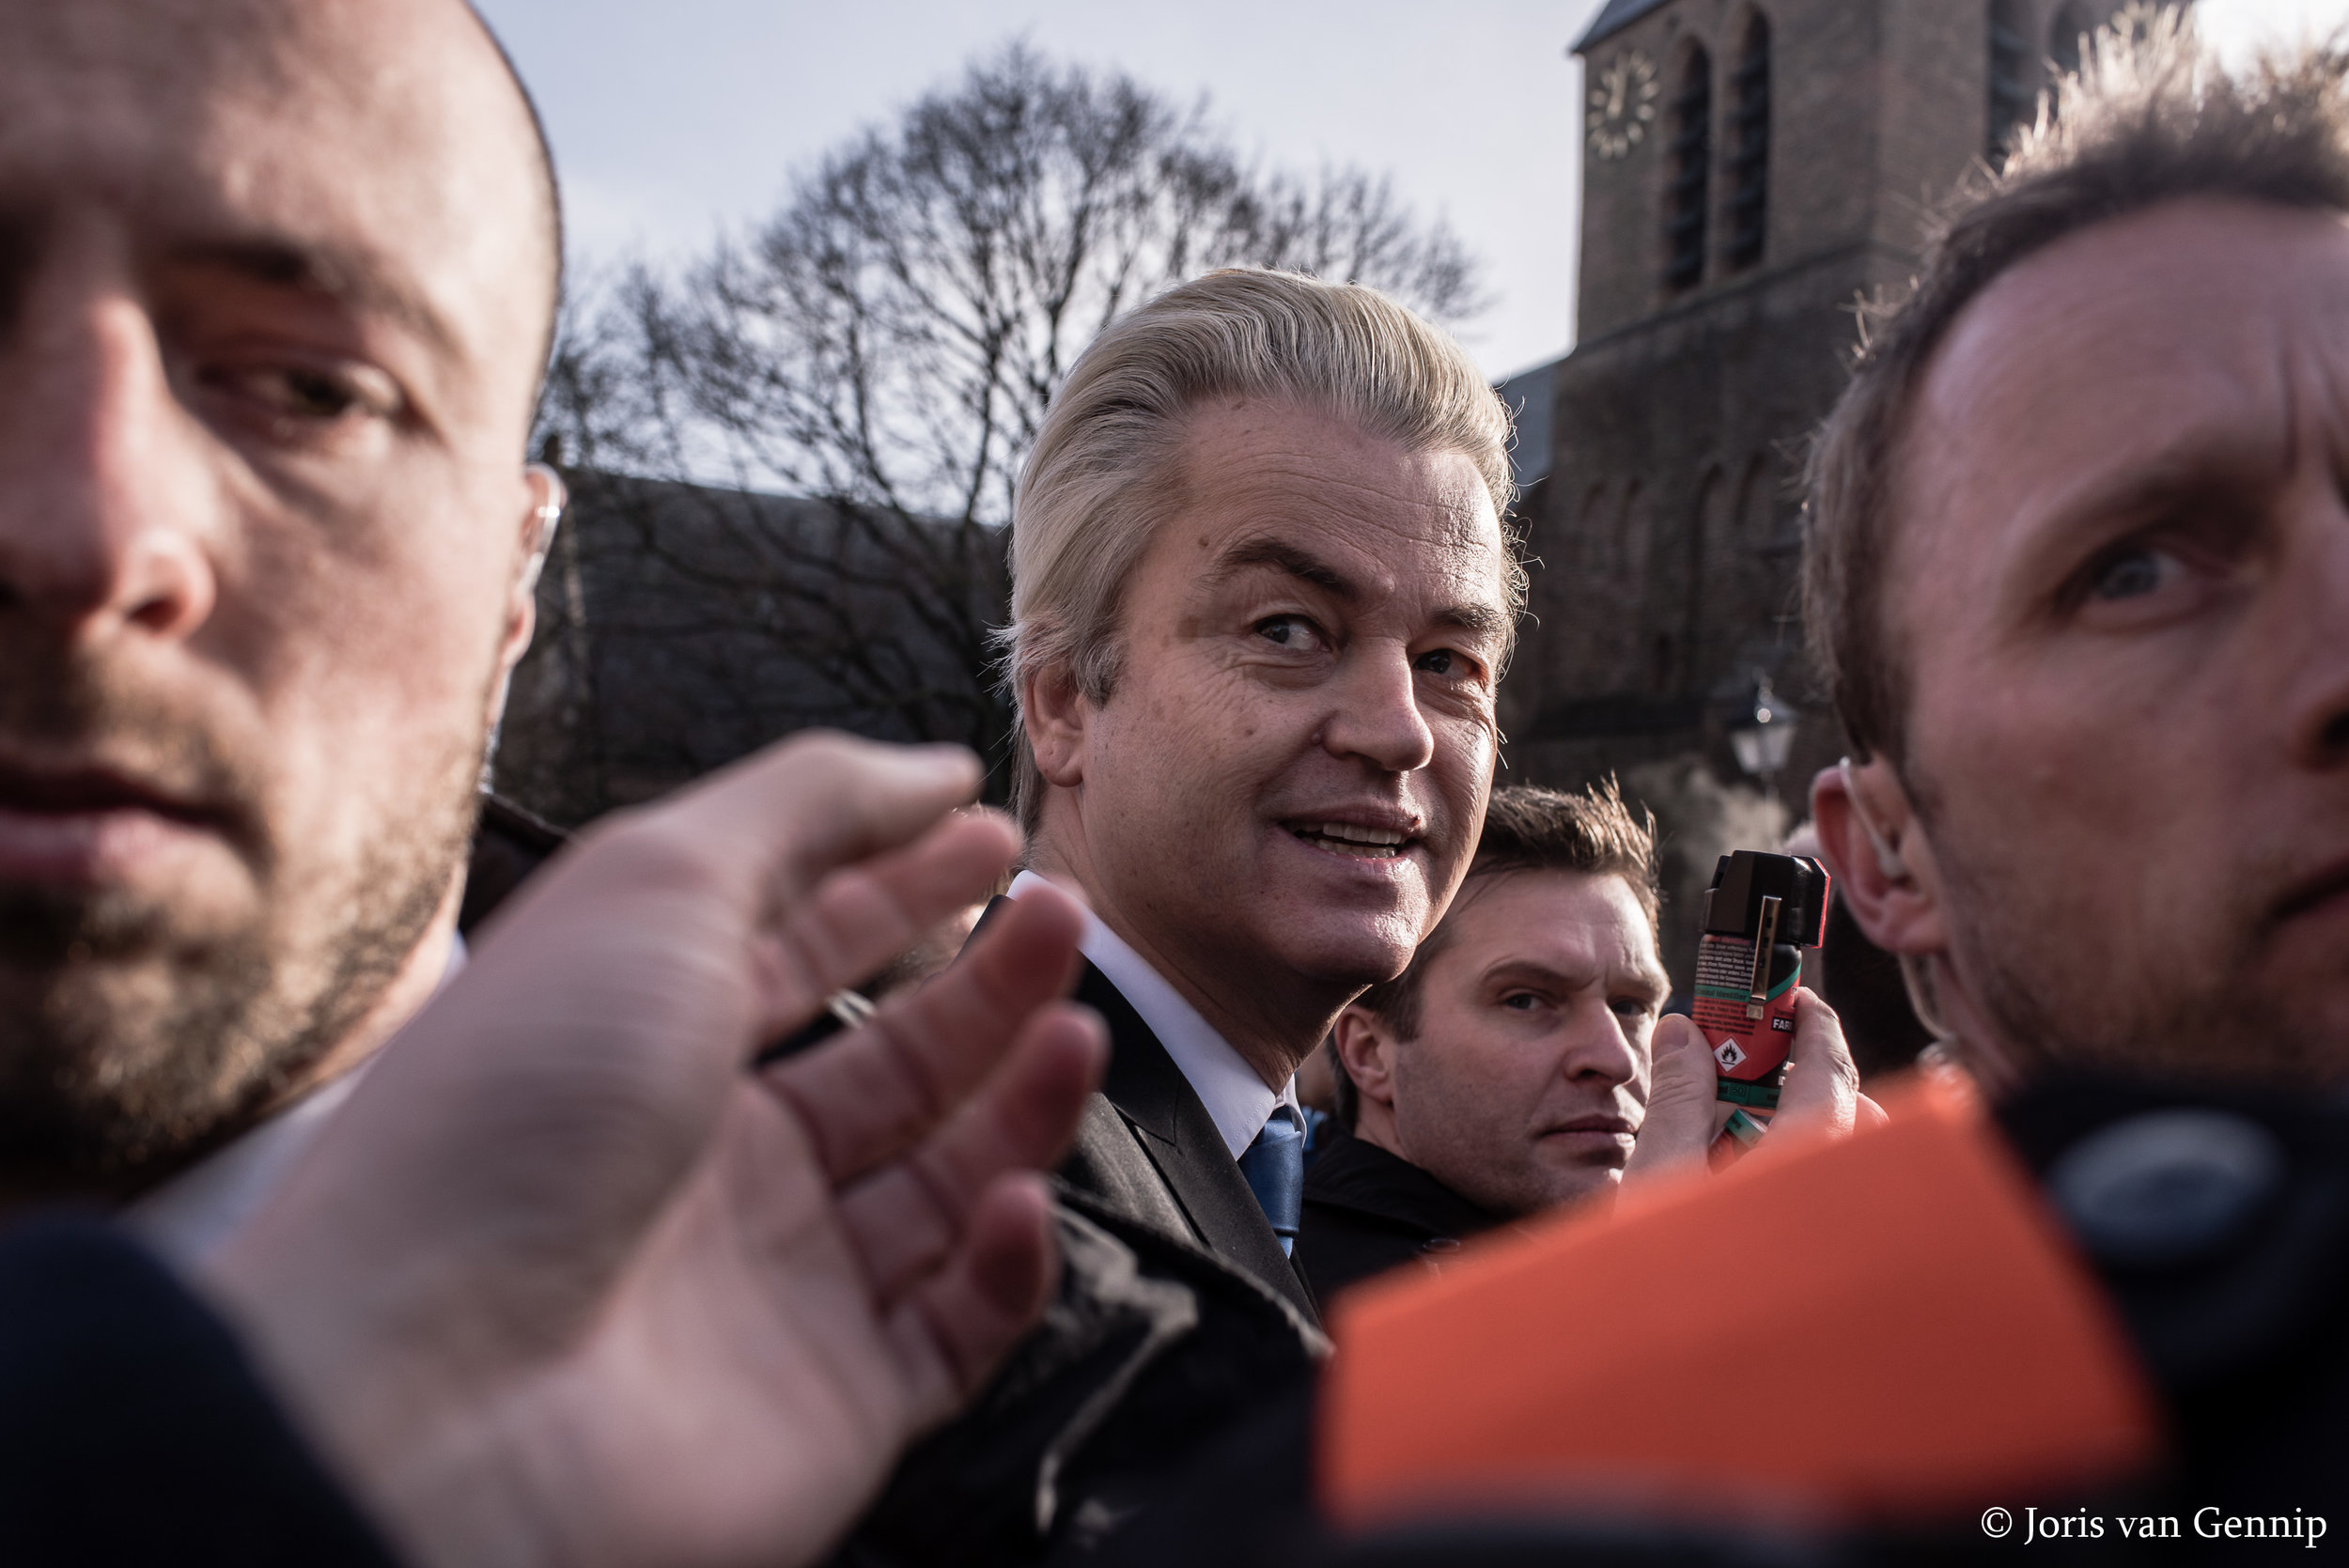 Geert Wilders hands out pepperspray |  ©   Joris van Gennip